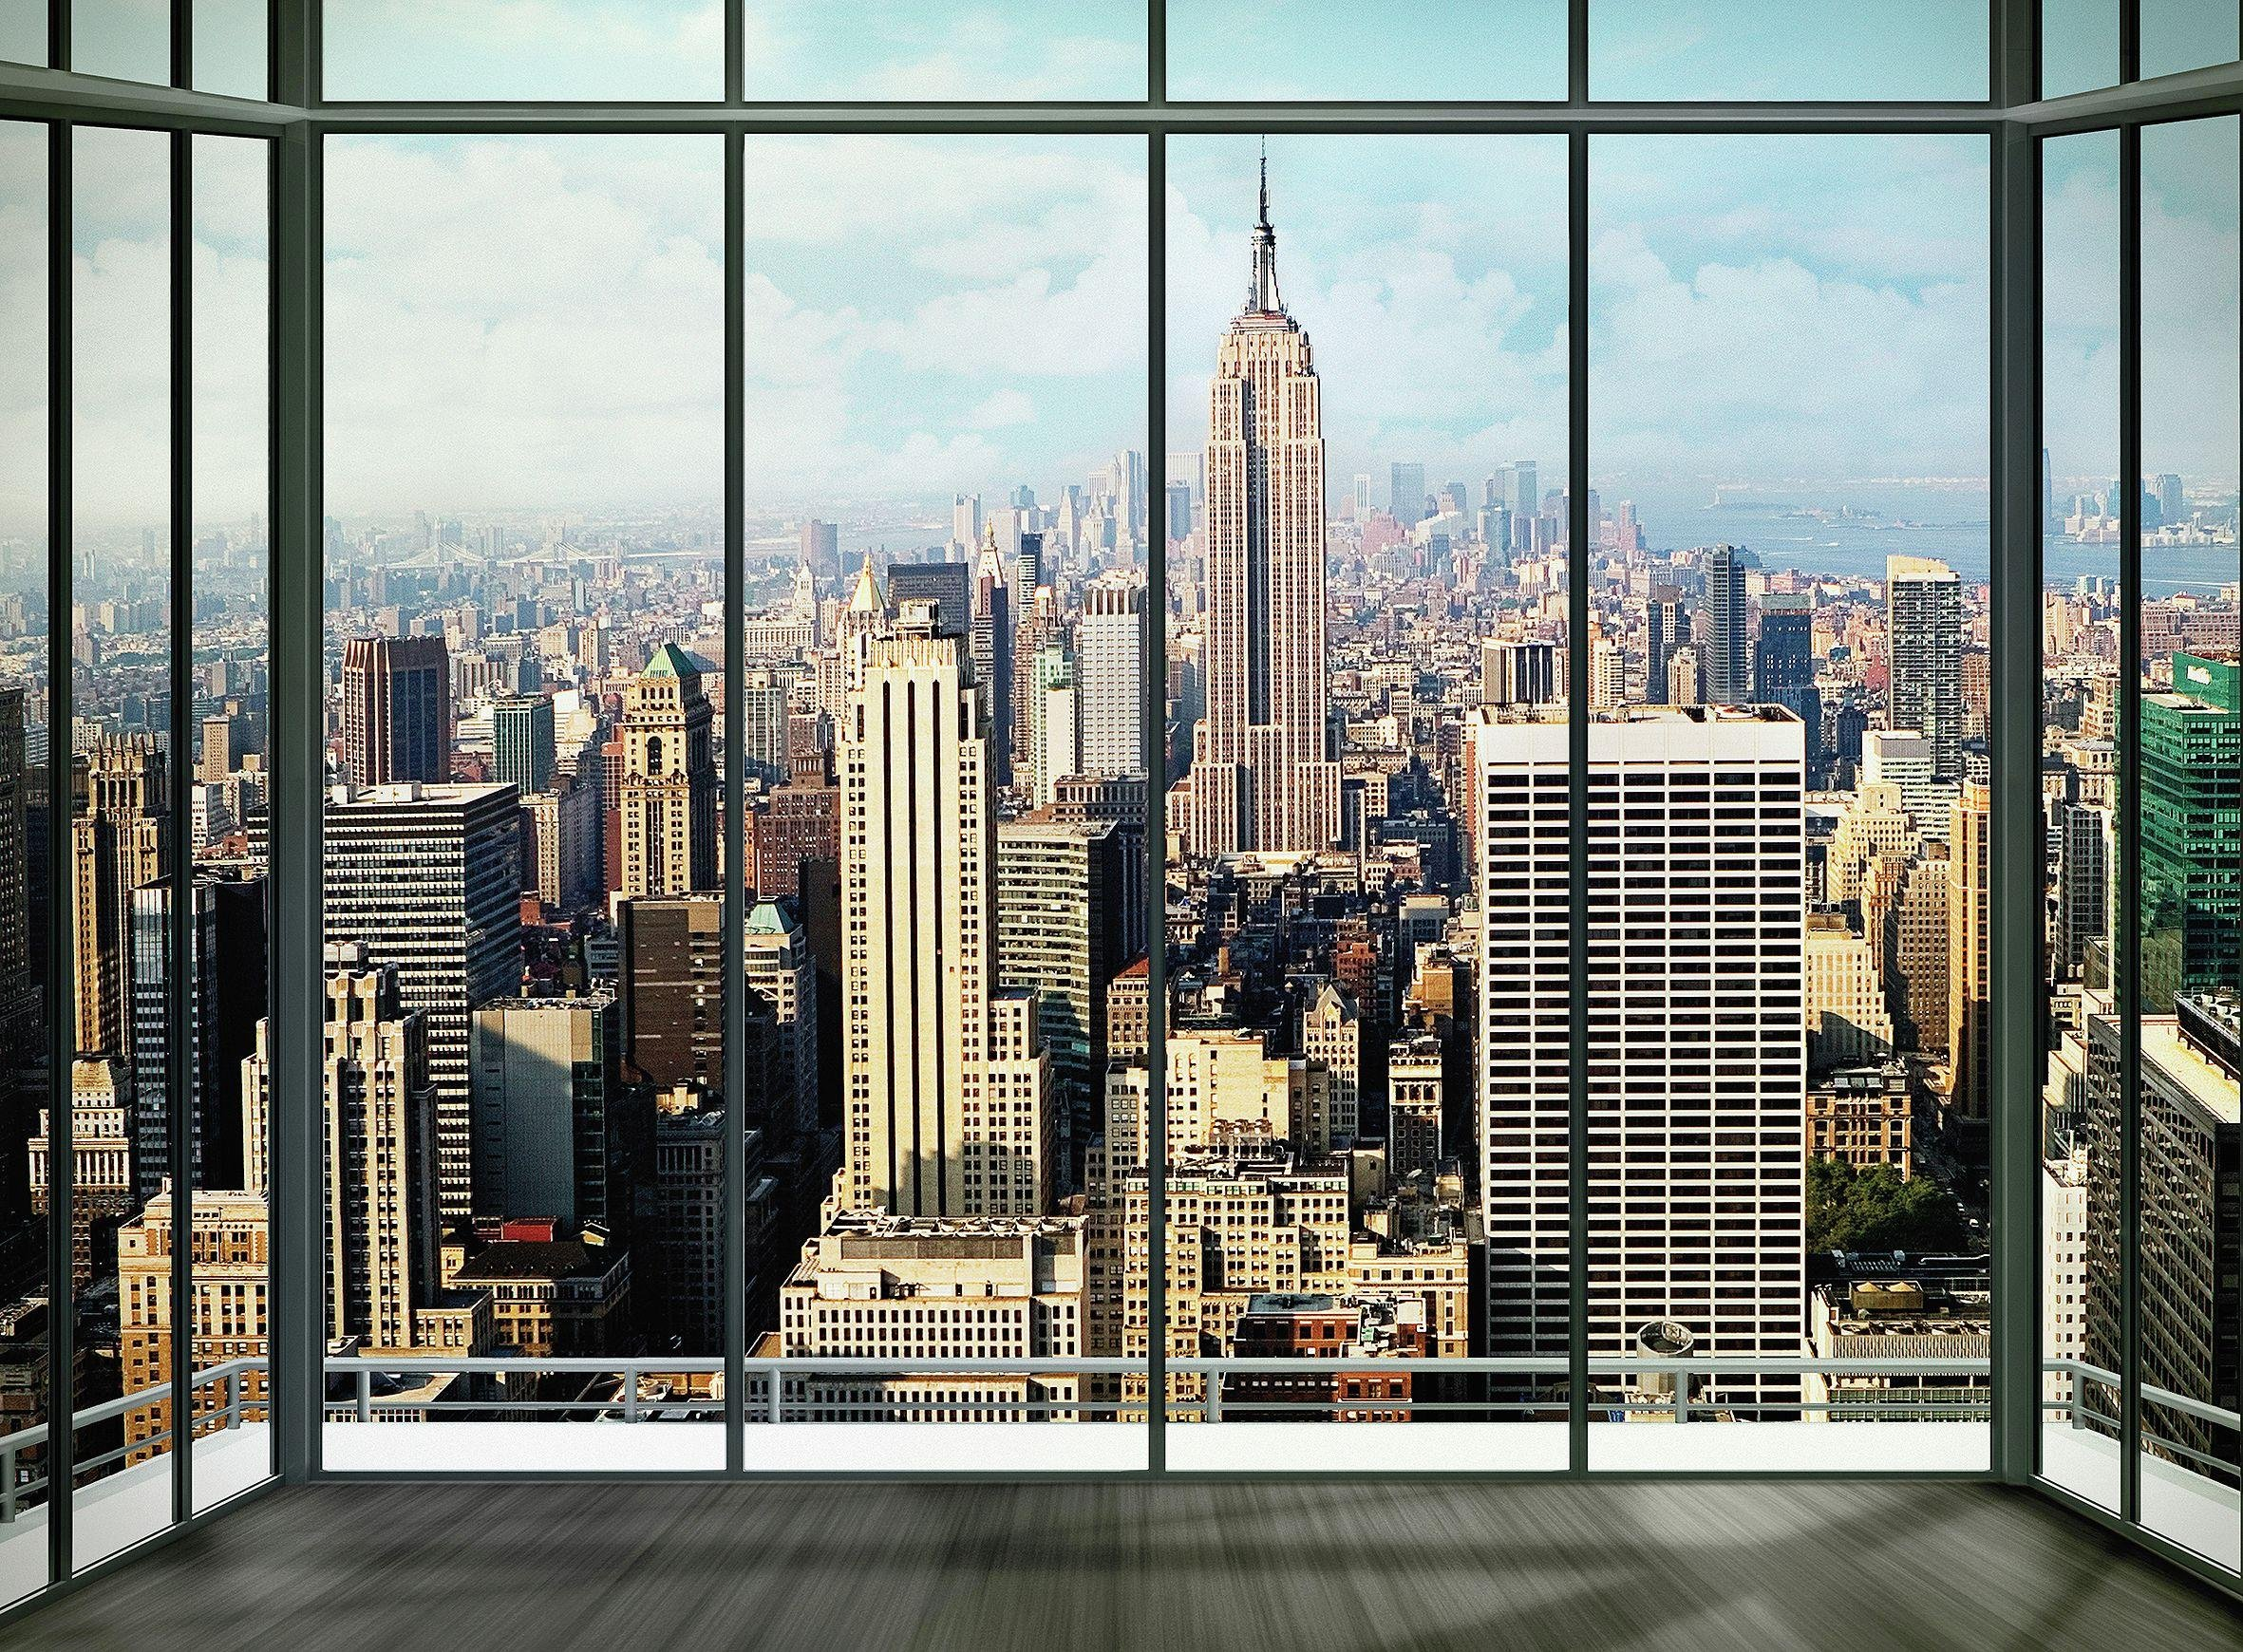 1Wall - City Window - Wall Mural